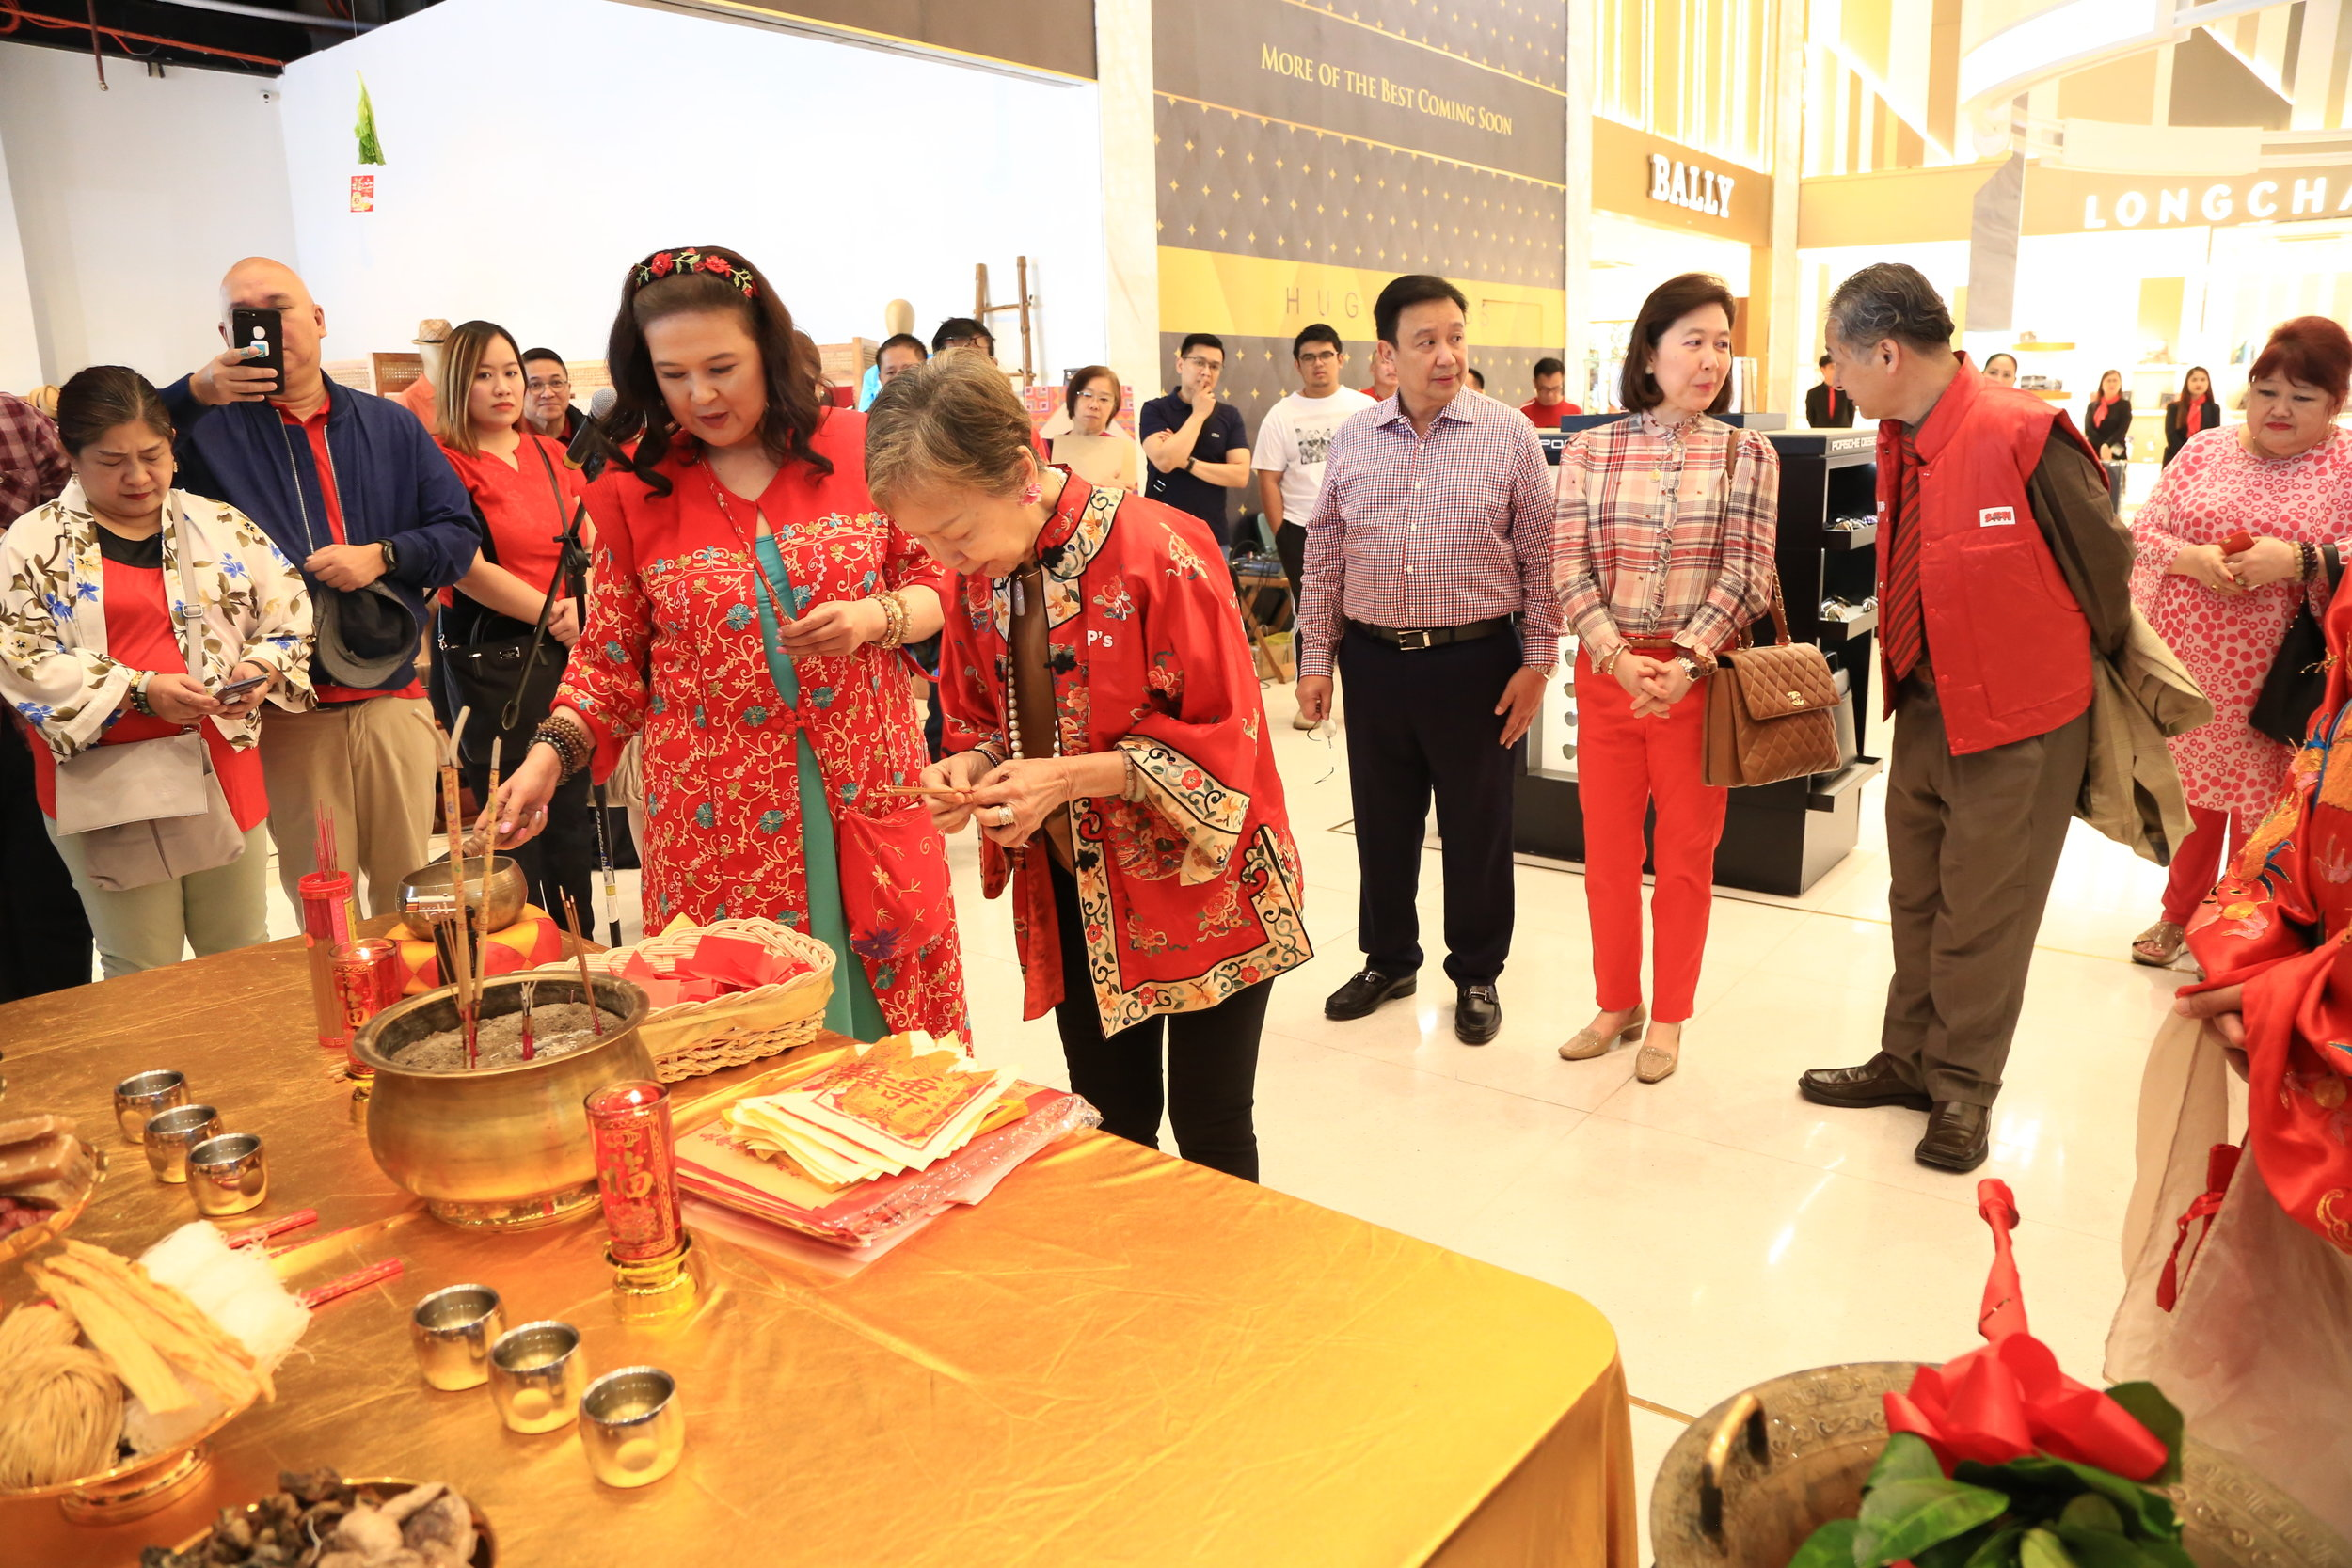 Feng shui expert Princess Lim Fernandez (left) with Ms. Jullie Yap-Daza (right) during the wishing ceremony.